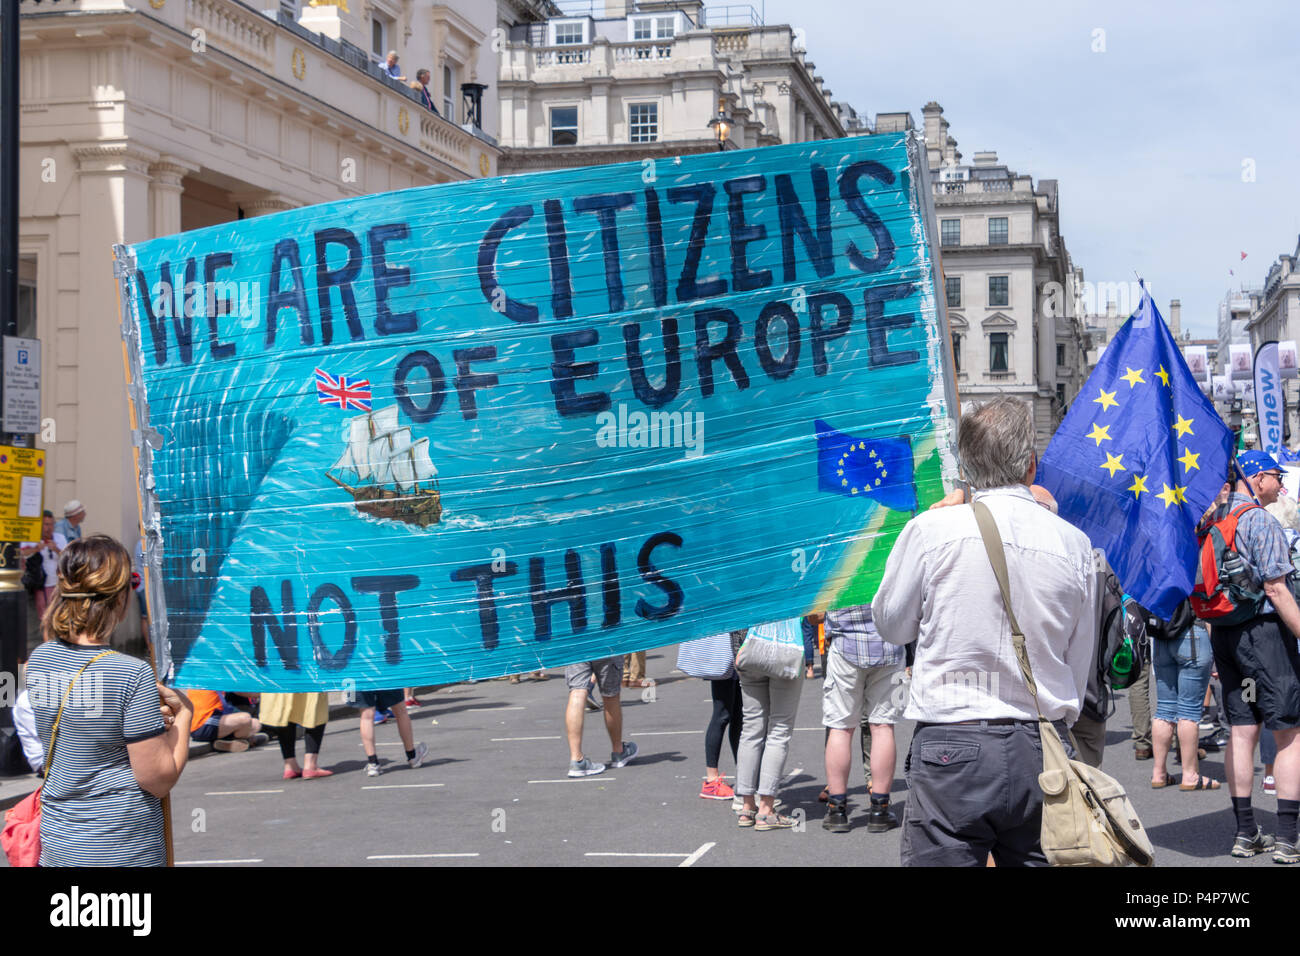 London, UK. 23 Jun, 2018: Demonstrators take part in the people's vote march held in London in favour of a meaningful vote on the final Brexit deal between the UK government and the European Union. Credit: Bradley Smith/Alamy Live News. - Stock Image